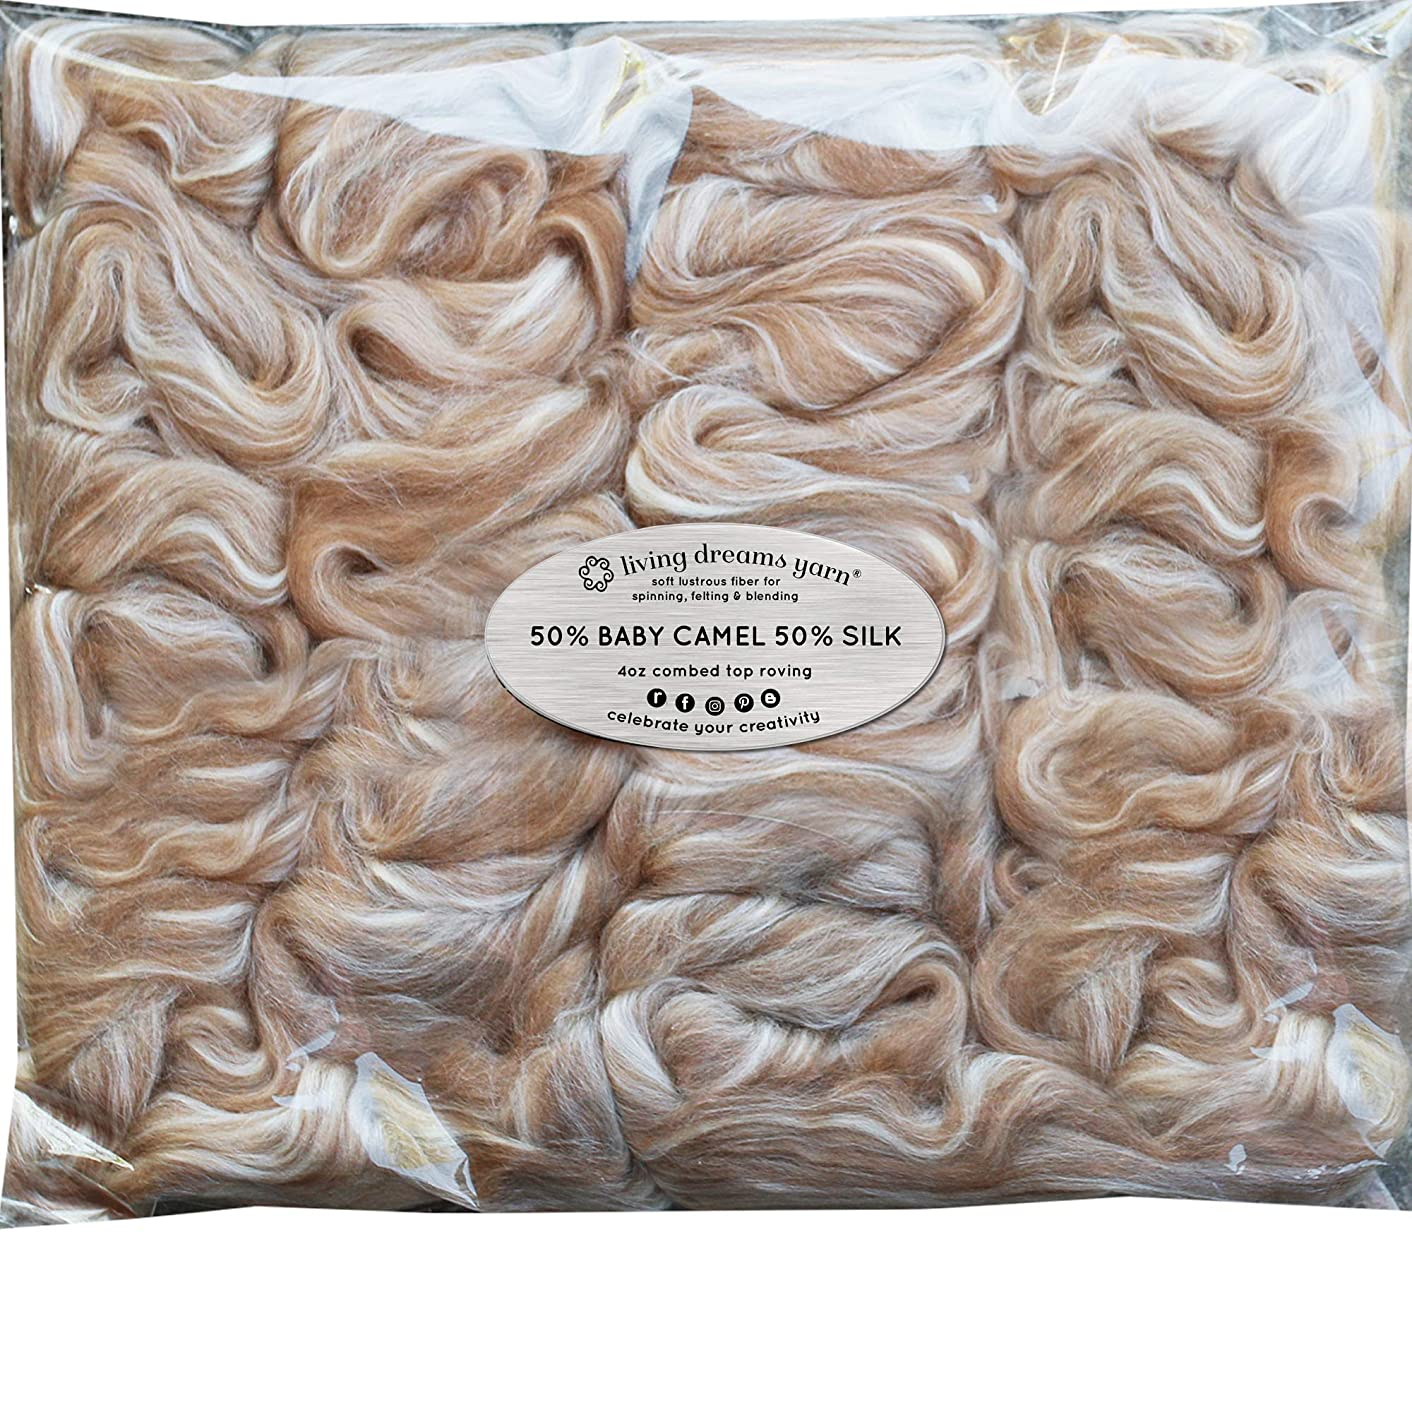 Baby Camel & TUSSAH Silk Fiber Blend. Luxuriously Soft Combed Top Wool Roving for Blending, Dyeing, Spinning & Felting